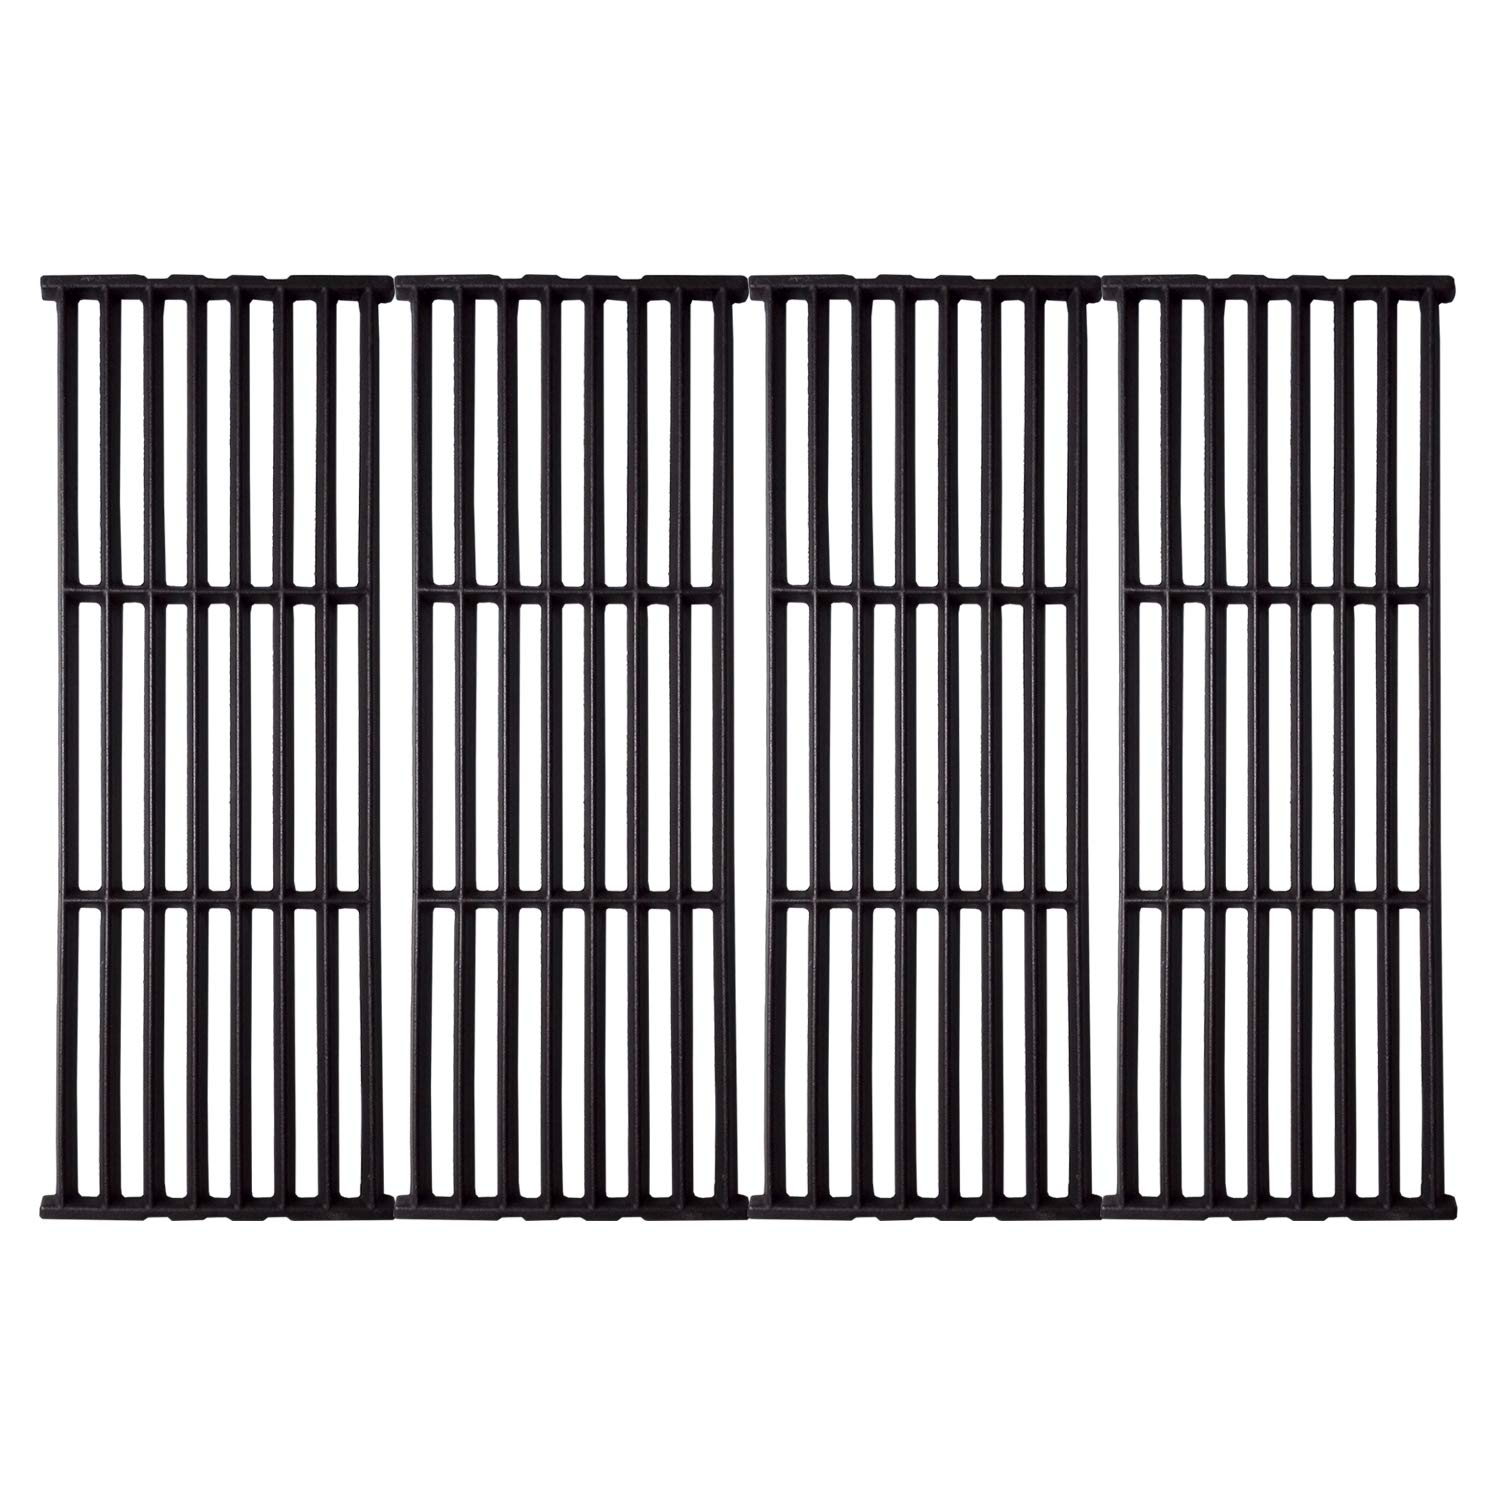 Grillflame 17 3/8 x 25 1/2'' Matte Enamel Cast Iron Cooking Grates for Broil King 9625-67, 9625-84, 9625-87, Baron 320, Baron 340, Baron 420, Baron 440, Baron 490